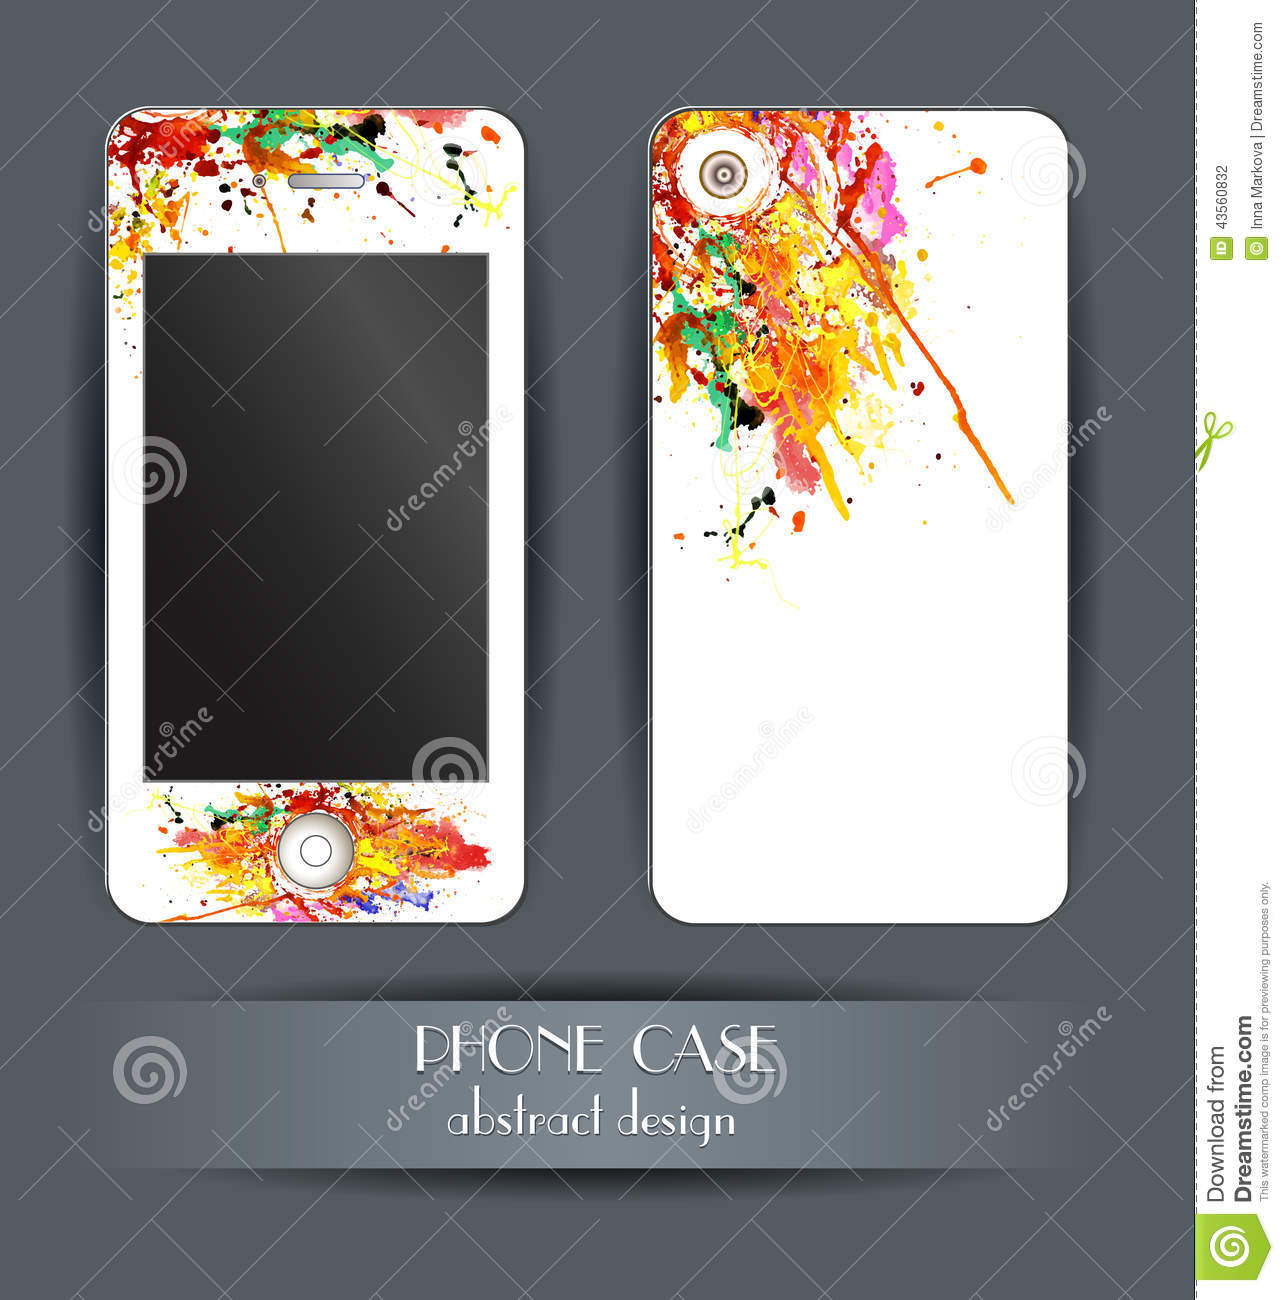 Style phone case cover for your mobile phone for Spray paint phone case